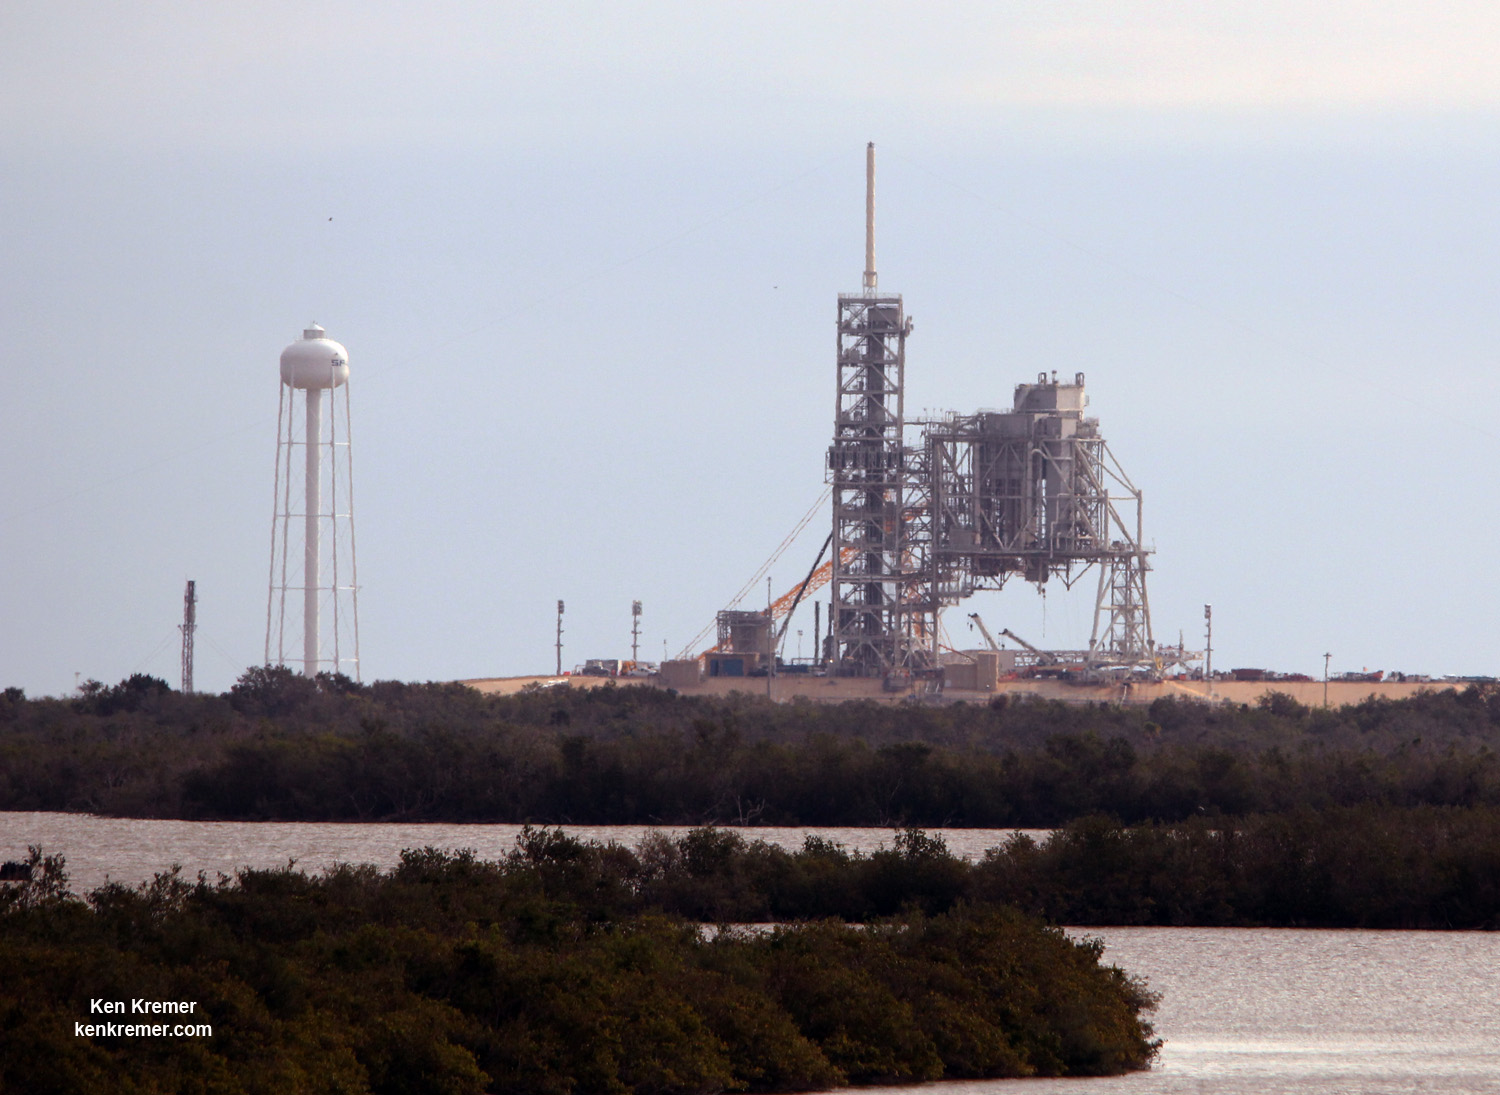 SpaceX Shuffles Falcon 9 Launch Schedule, NASA Gets 1st Launch from Historic KSC Pad 39A